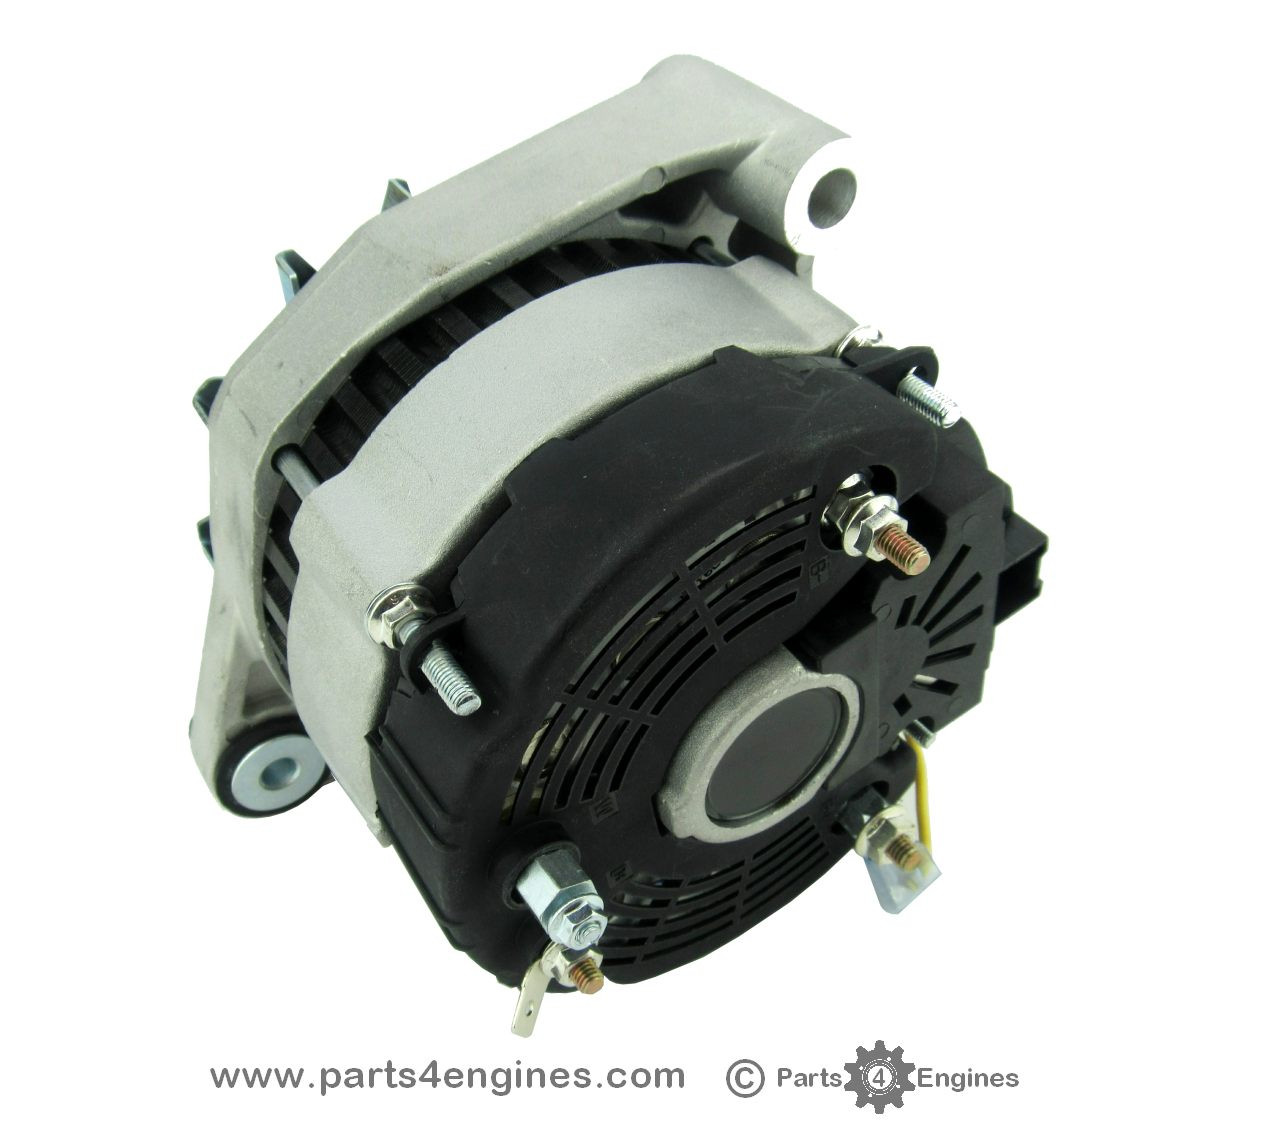 Volvo Penta TAMD22 isolated earth Alternator | Volvo Penta Alternator Wiring Diagram |  | Parts4Engines